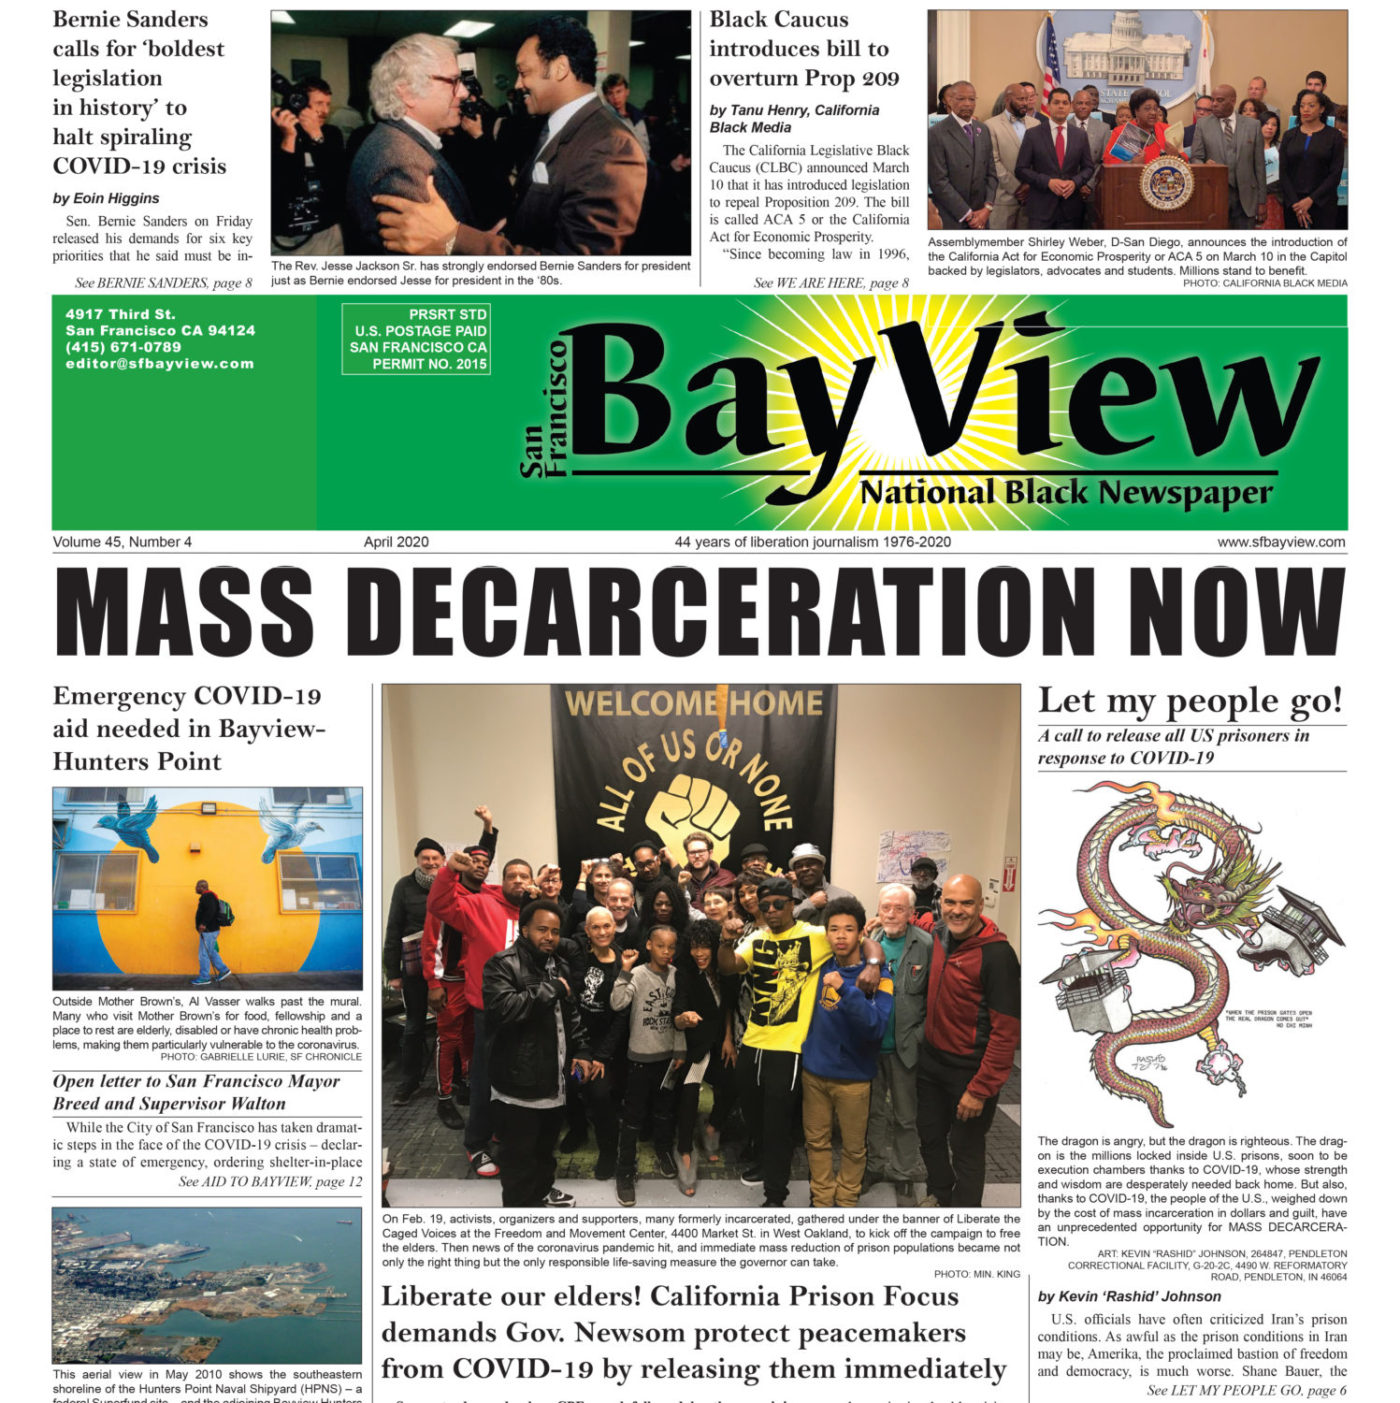 SF-Bay-View-0420-front-page-web-cropped-1400x1403, MASS DECARCERATION NOW, Behind Enemy Lines